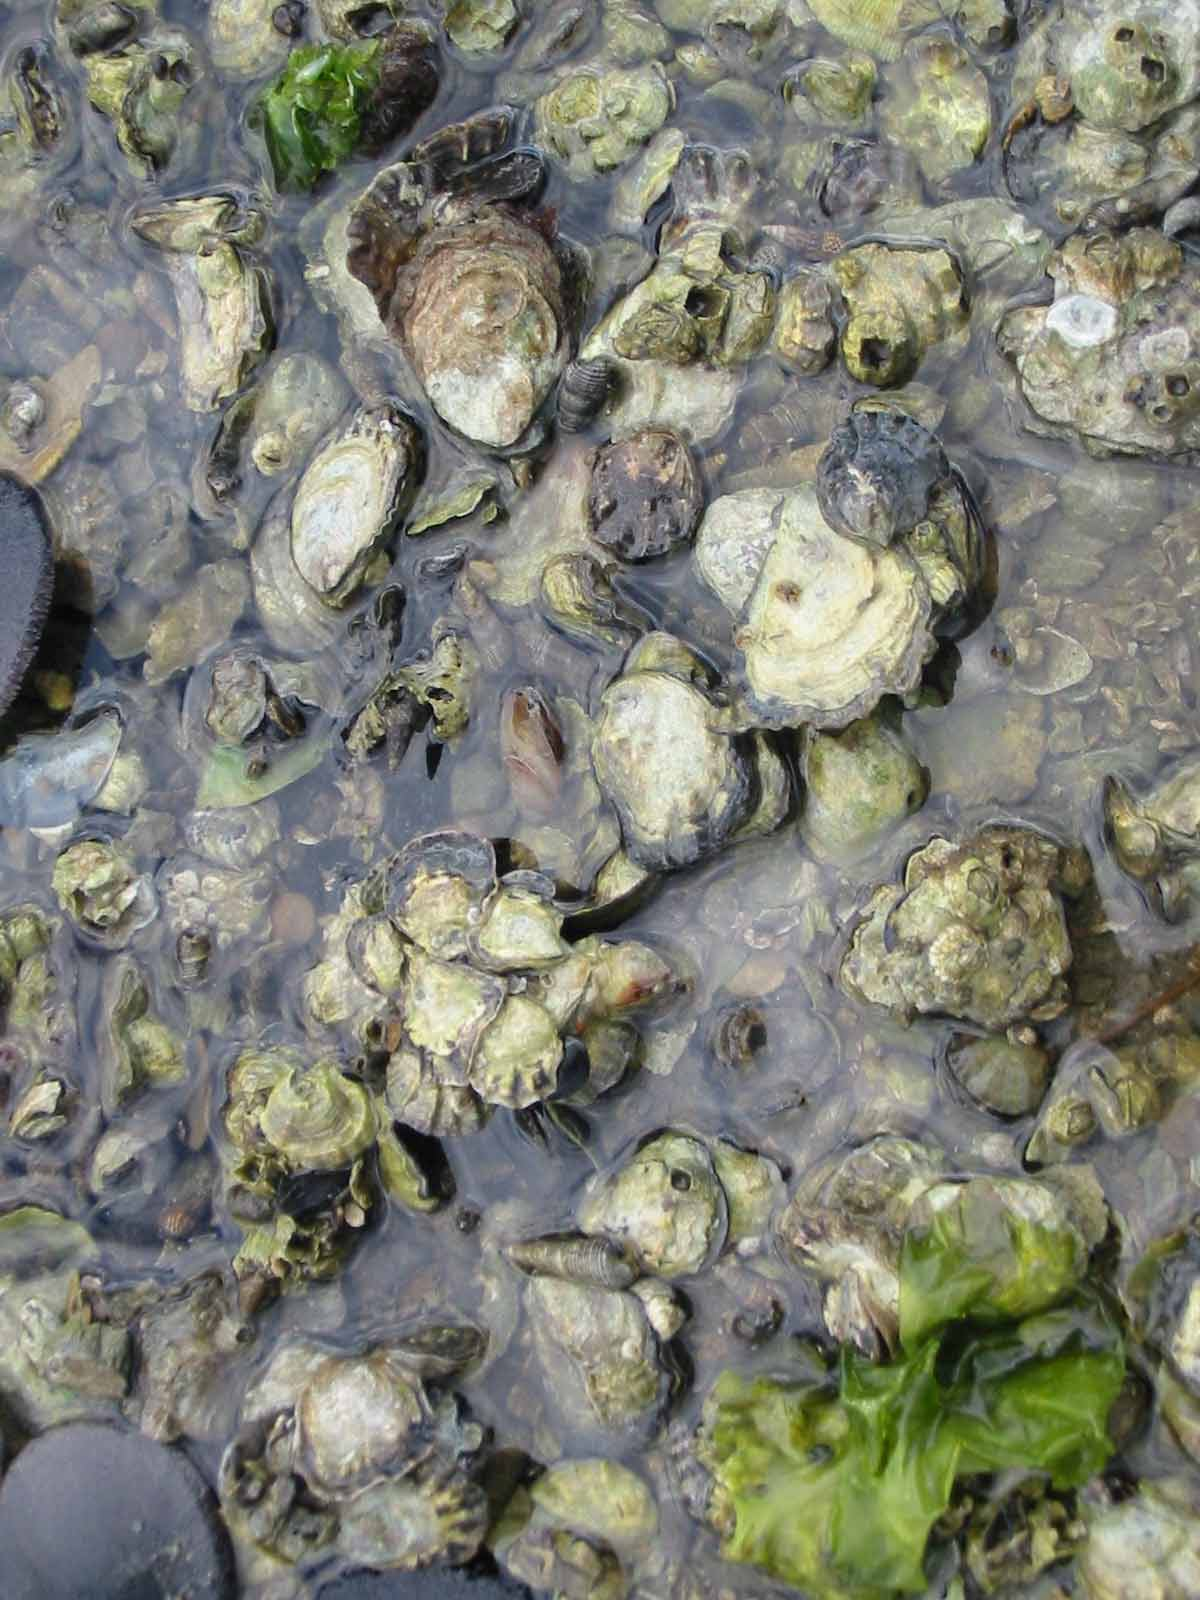 Rebuilding Olympia oyster populations in Puget Sound, Washington, provides critical habitat and water quality attributes upon which other species depend. Source: Puget Sound Restoration Fund